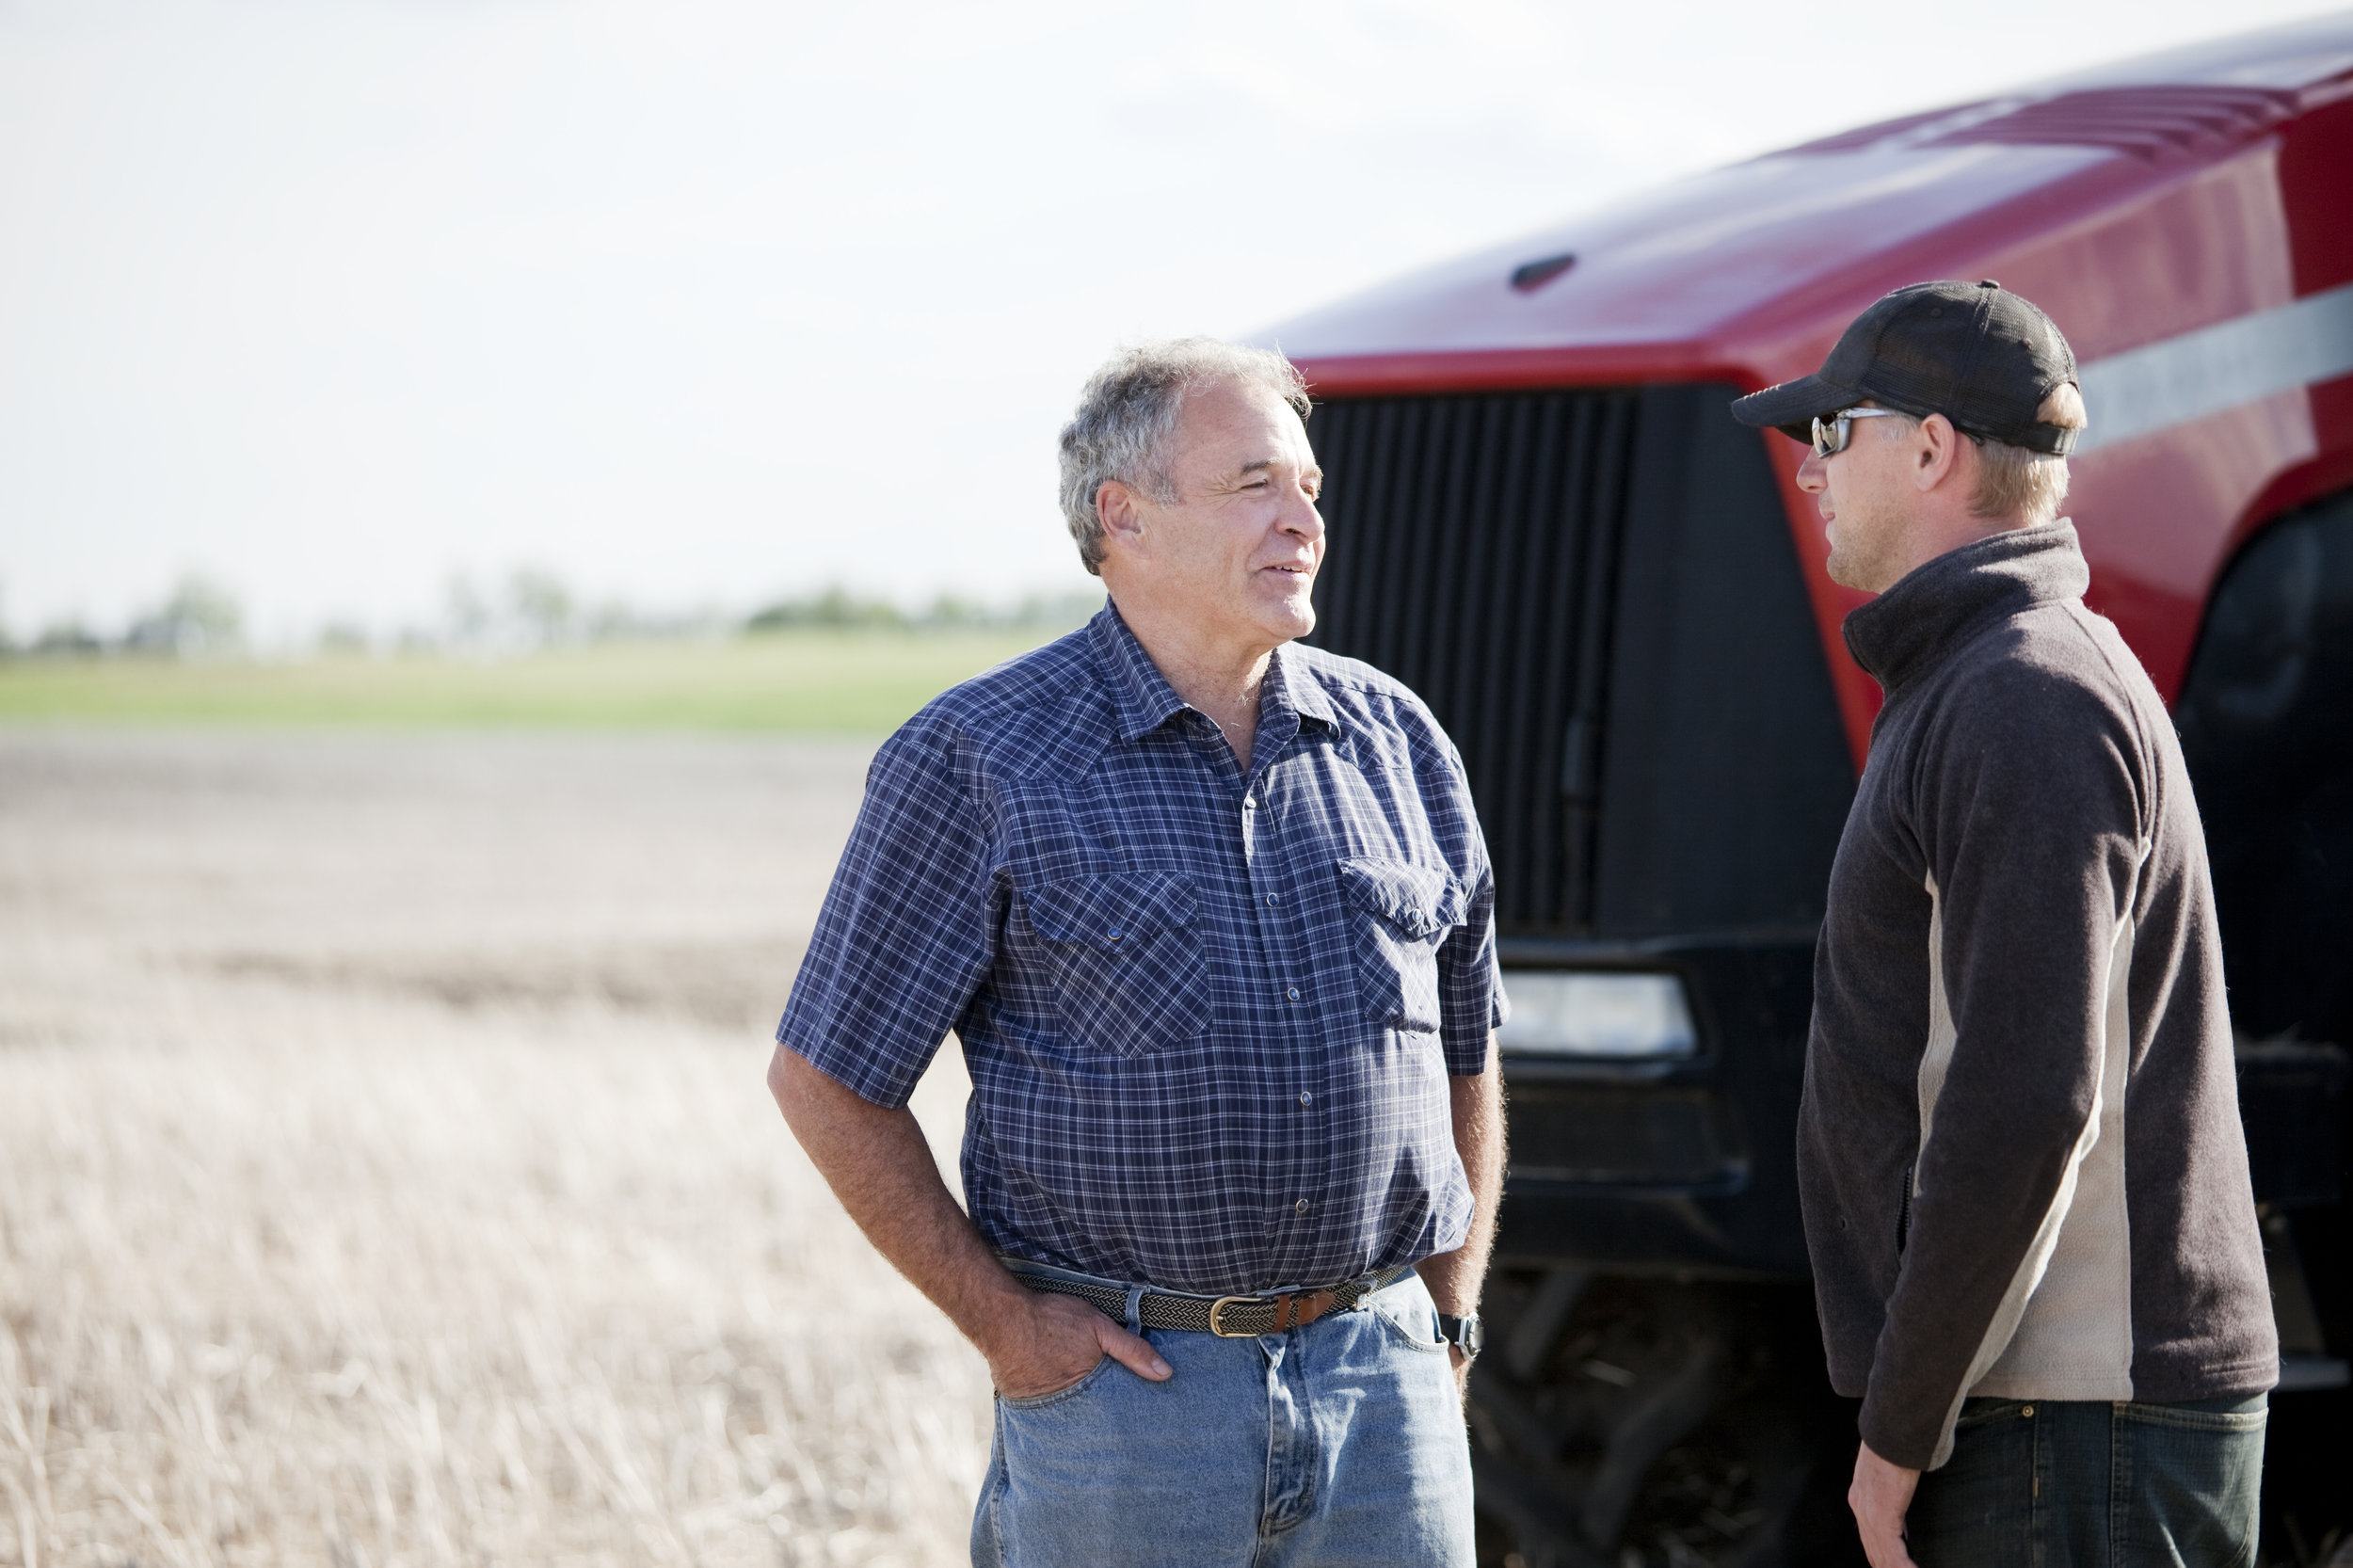 iStock-157609206 - farmers talking in front of tractor.jpg